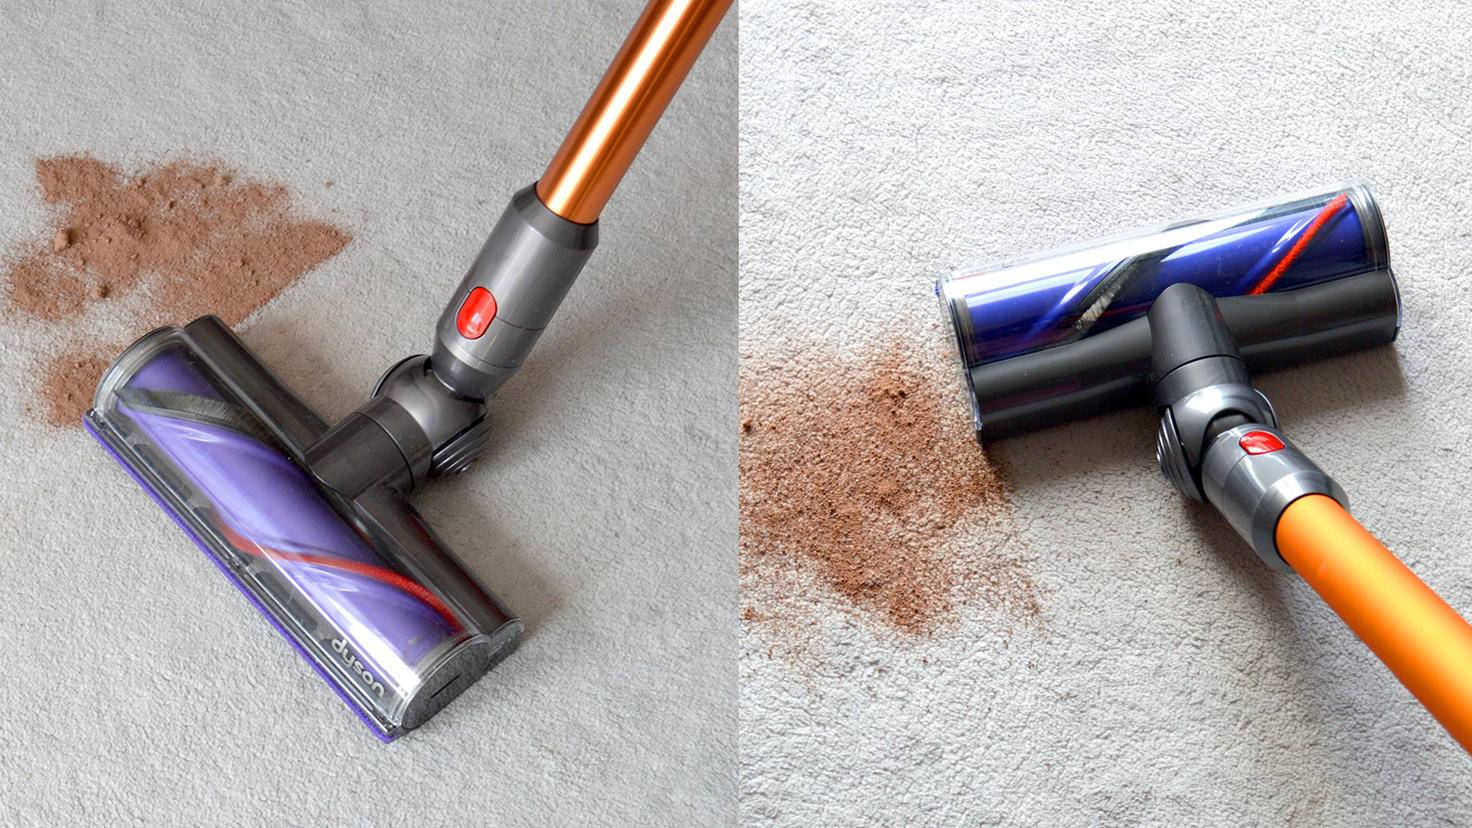 Dyson Cyclone V10 Absolute-Dyson V8 Absolute-Kakao-TURN ON